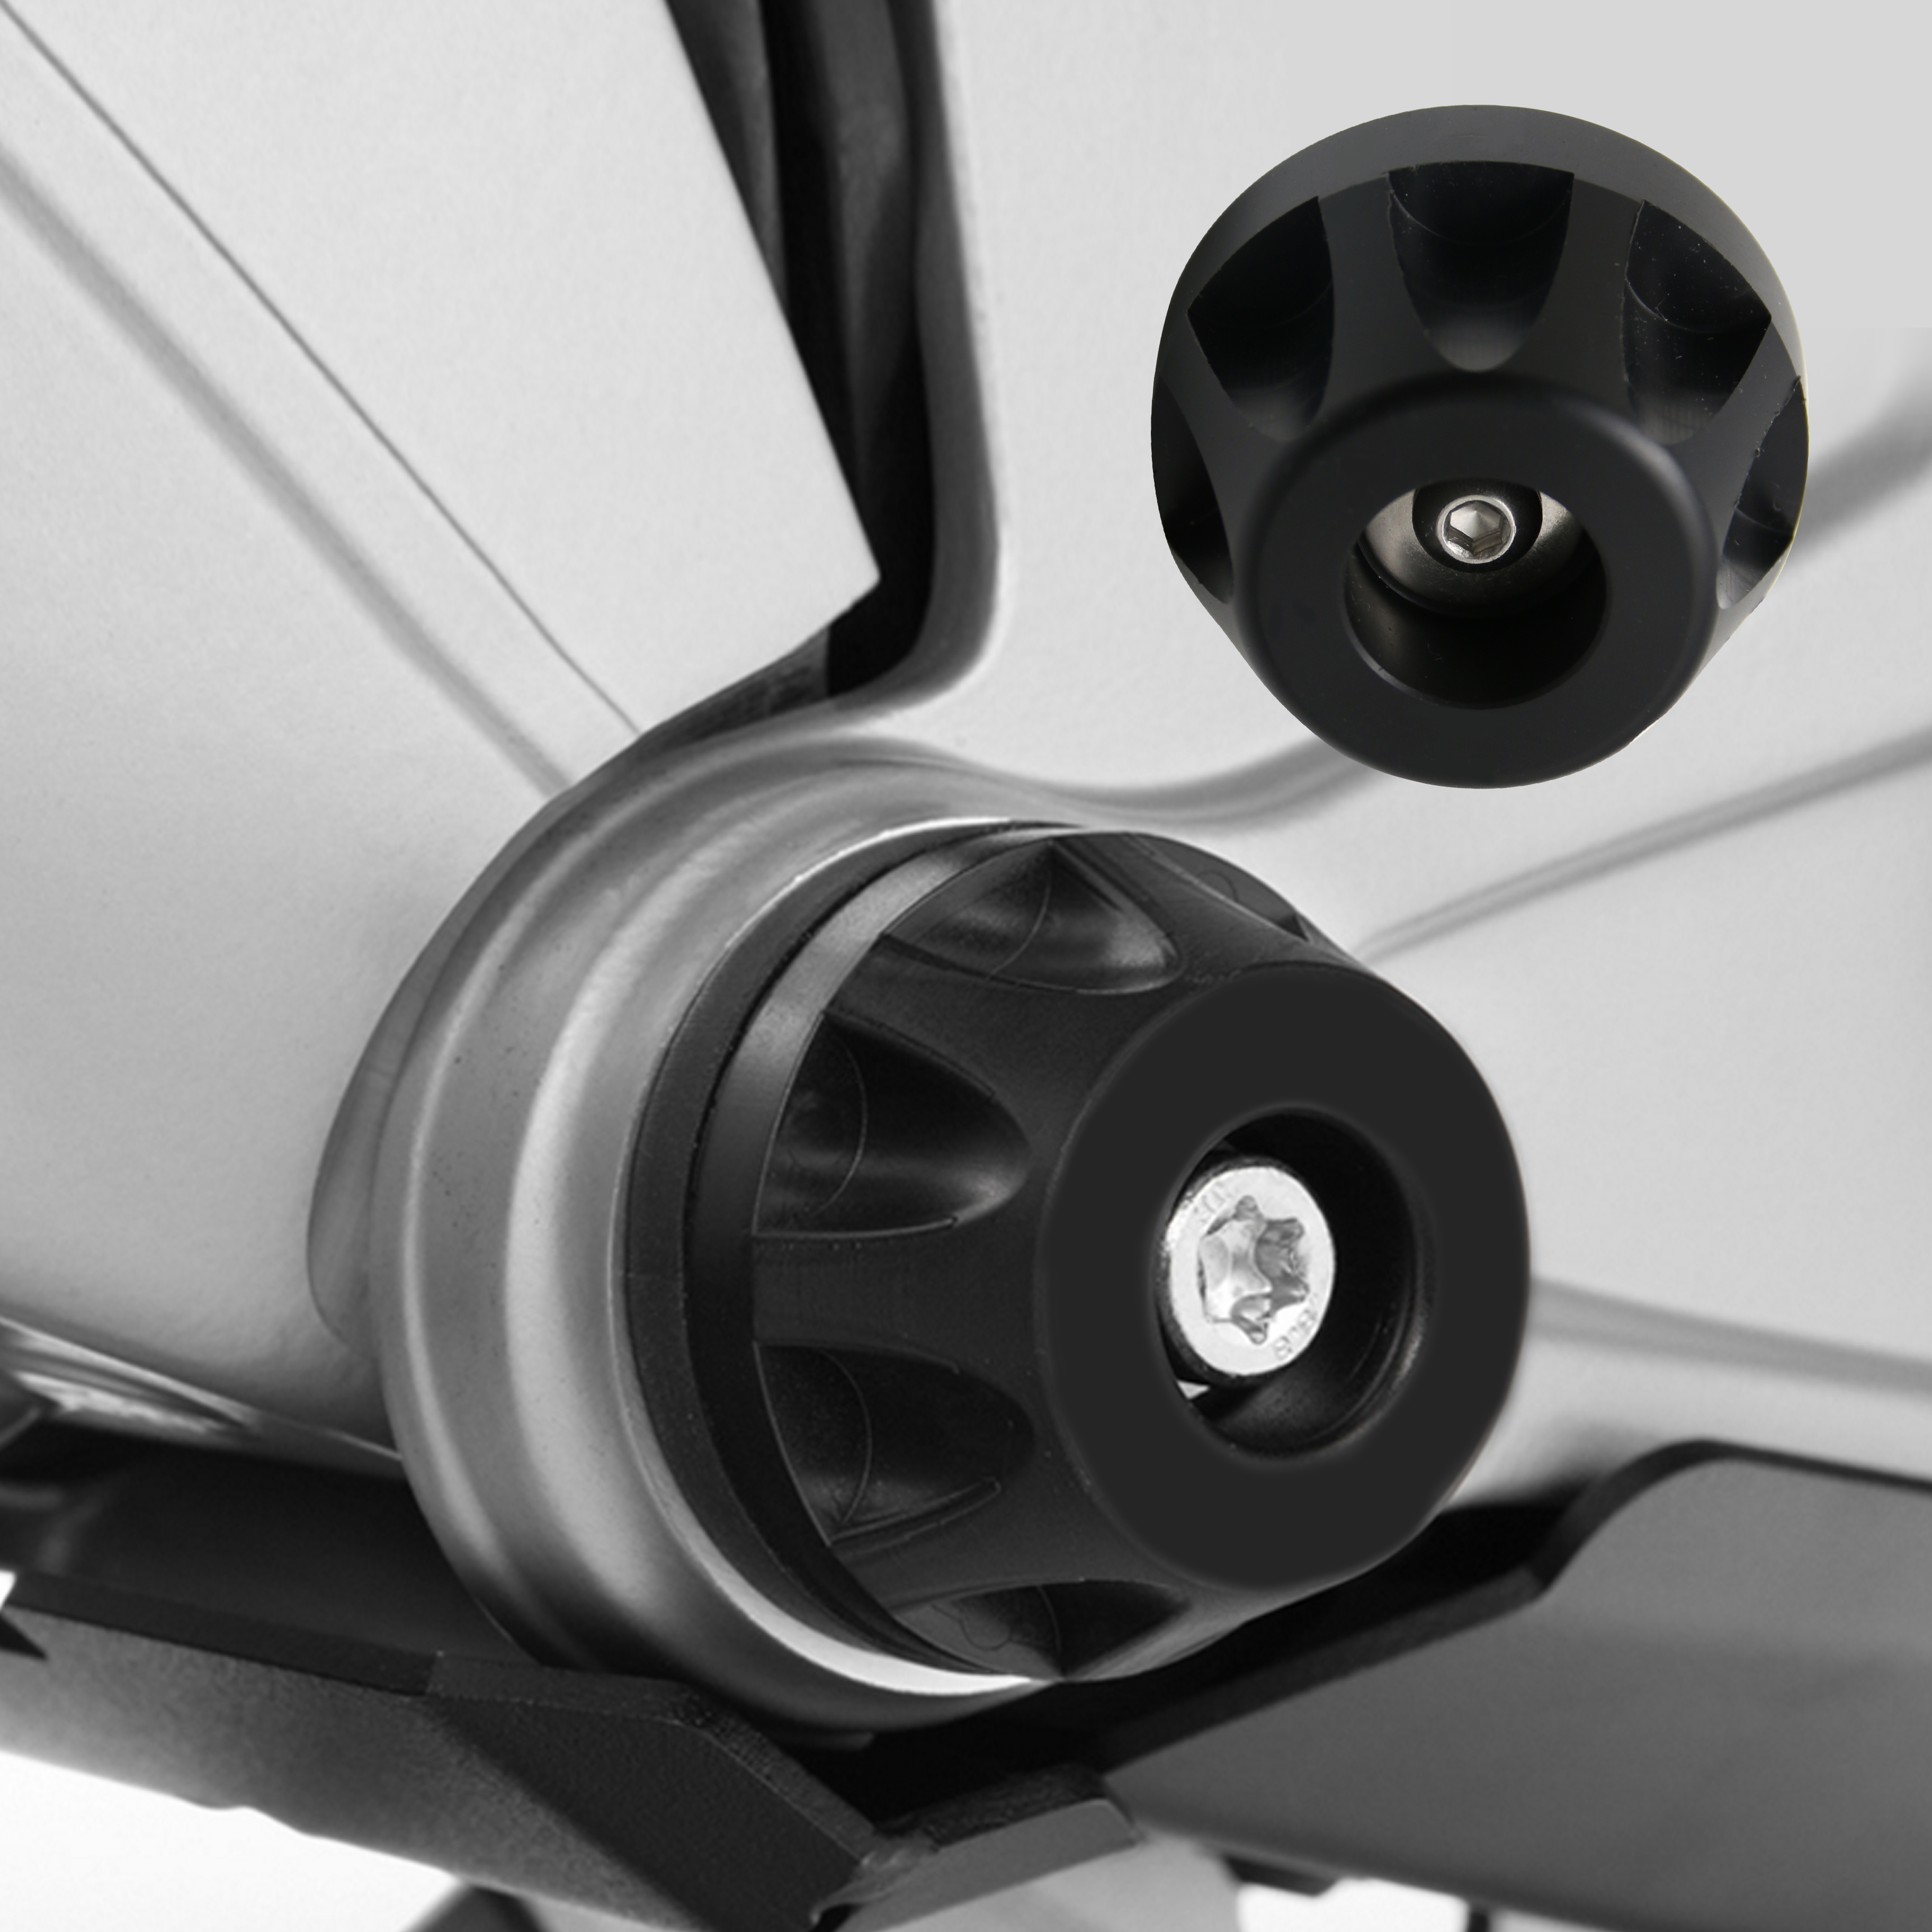 Rear Propeller Shaft Shatter-resistant Protector for BMW R1200GS ADV Motorcycle Accessories black